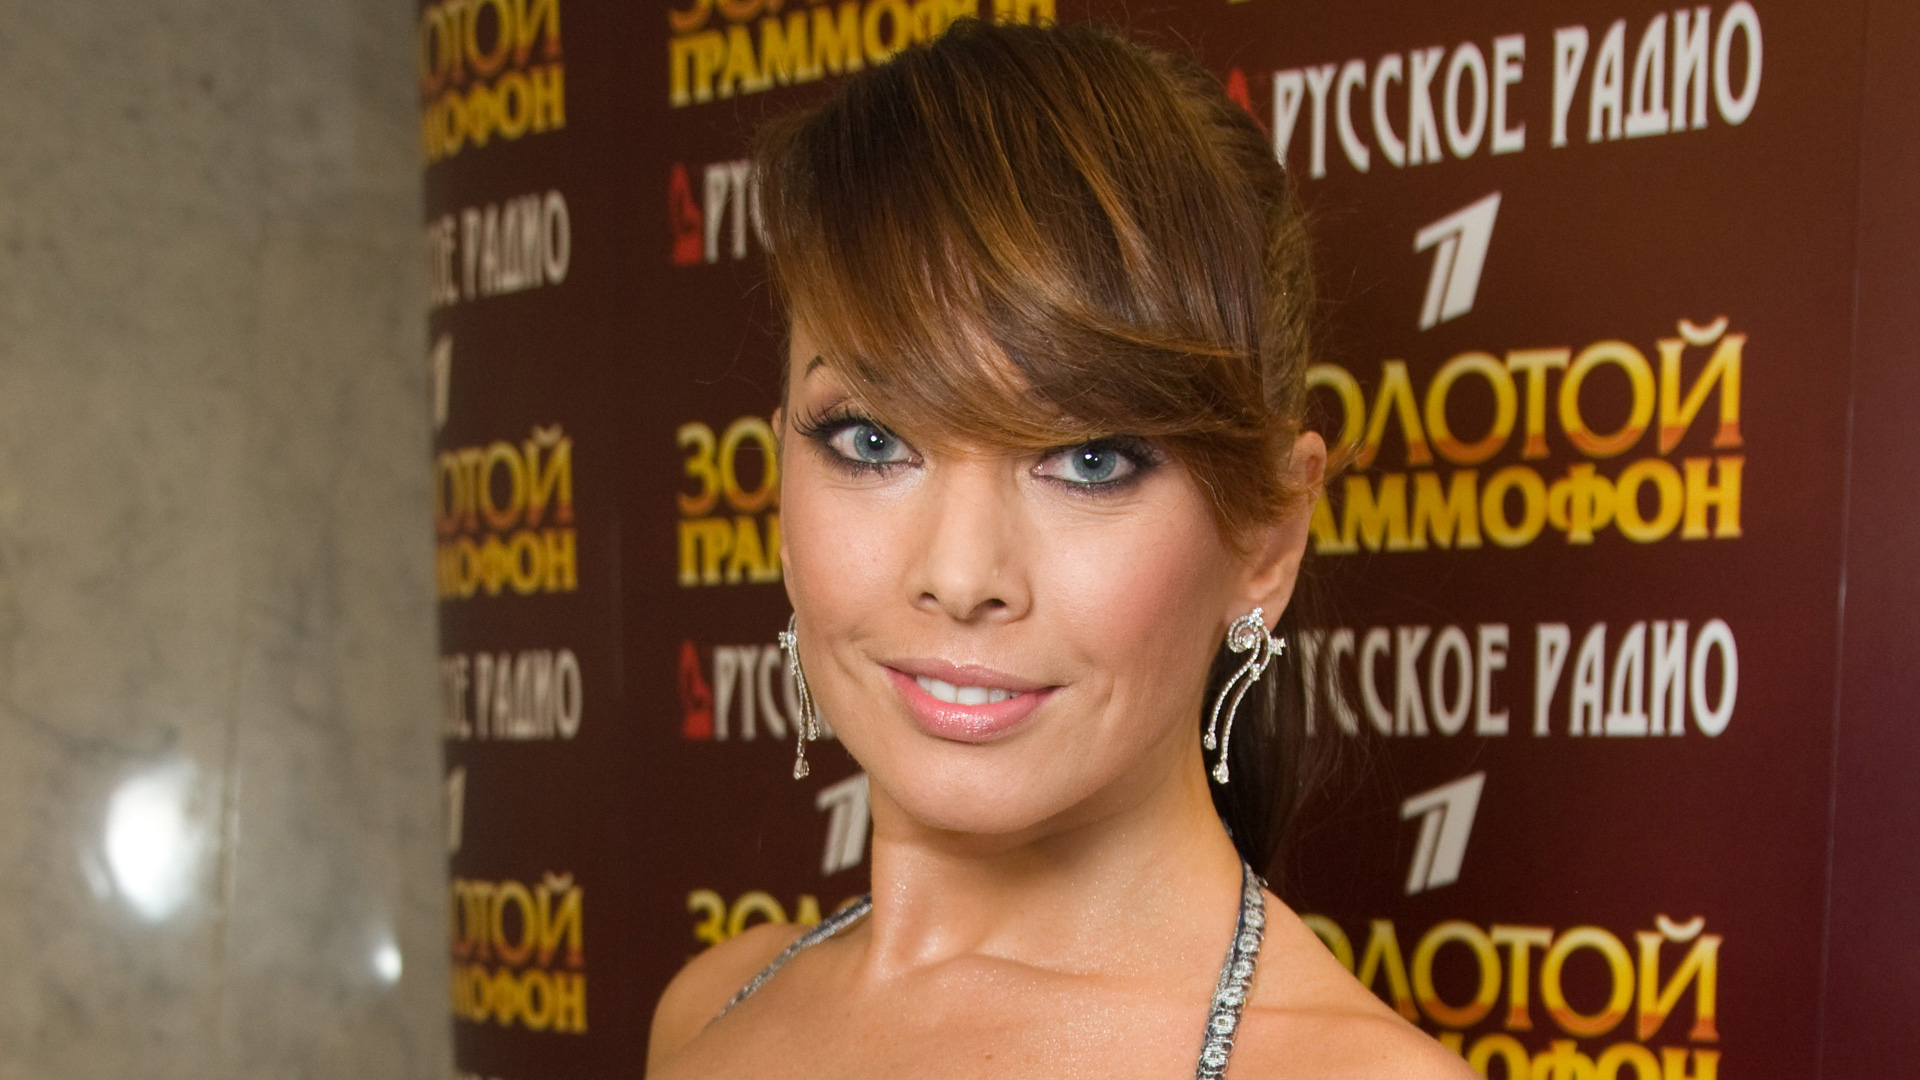 For the first time, Zhanna Friske had to blush in public 11.07.2010 52